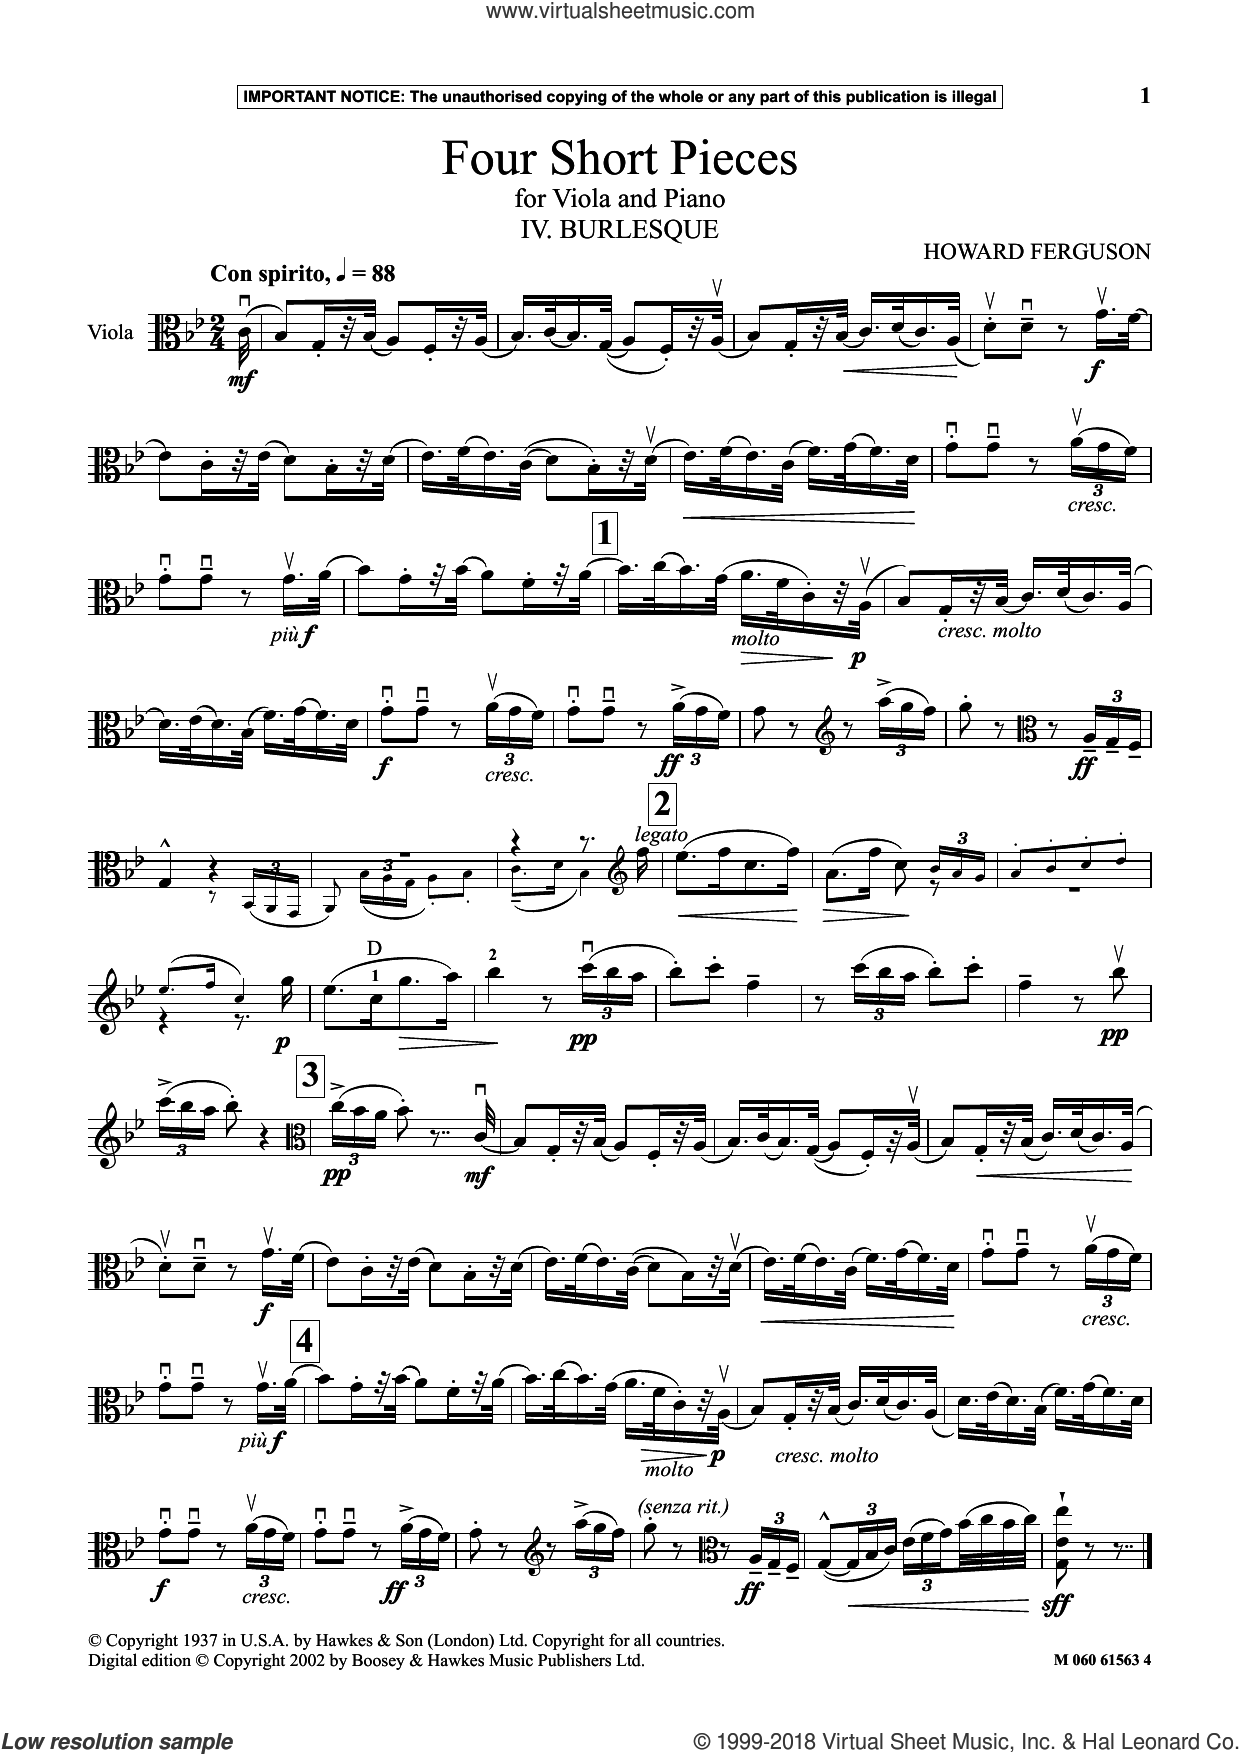 IV. Burlesque (from Four Short Pieces For Viola And Piano) sheet music for viola solo by Howard Ferguson, classical score, intermediate skill level